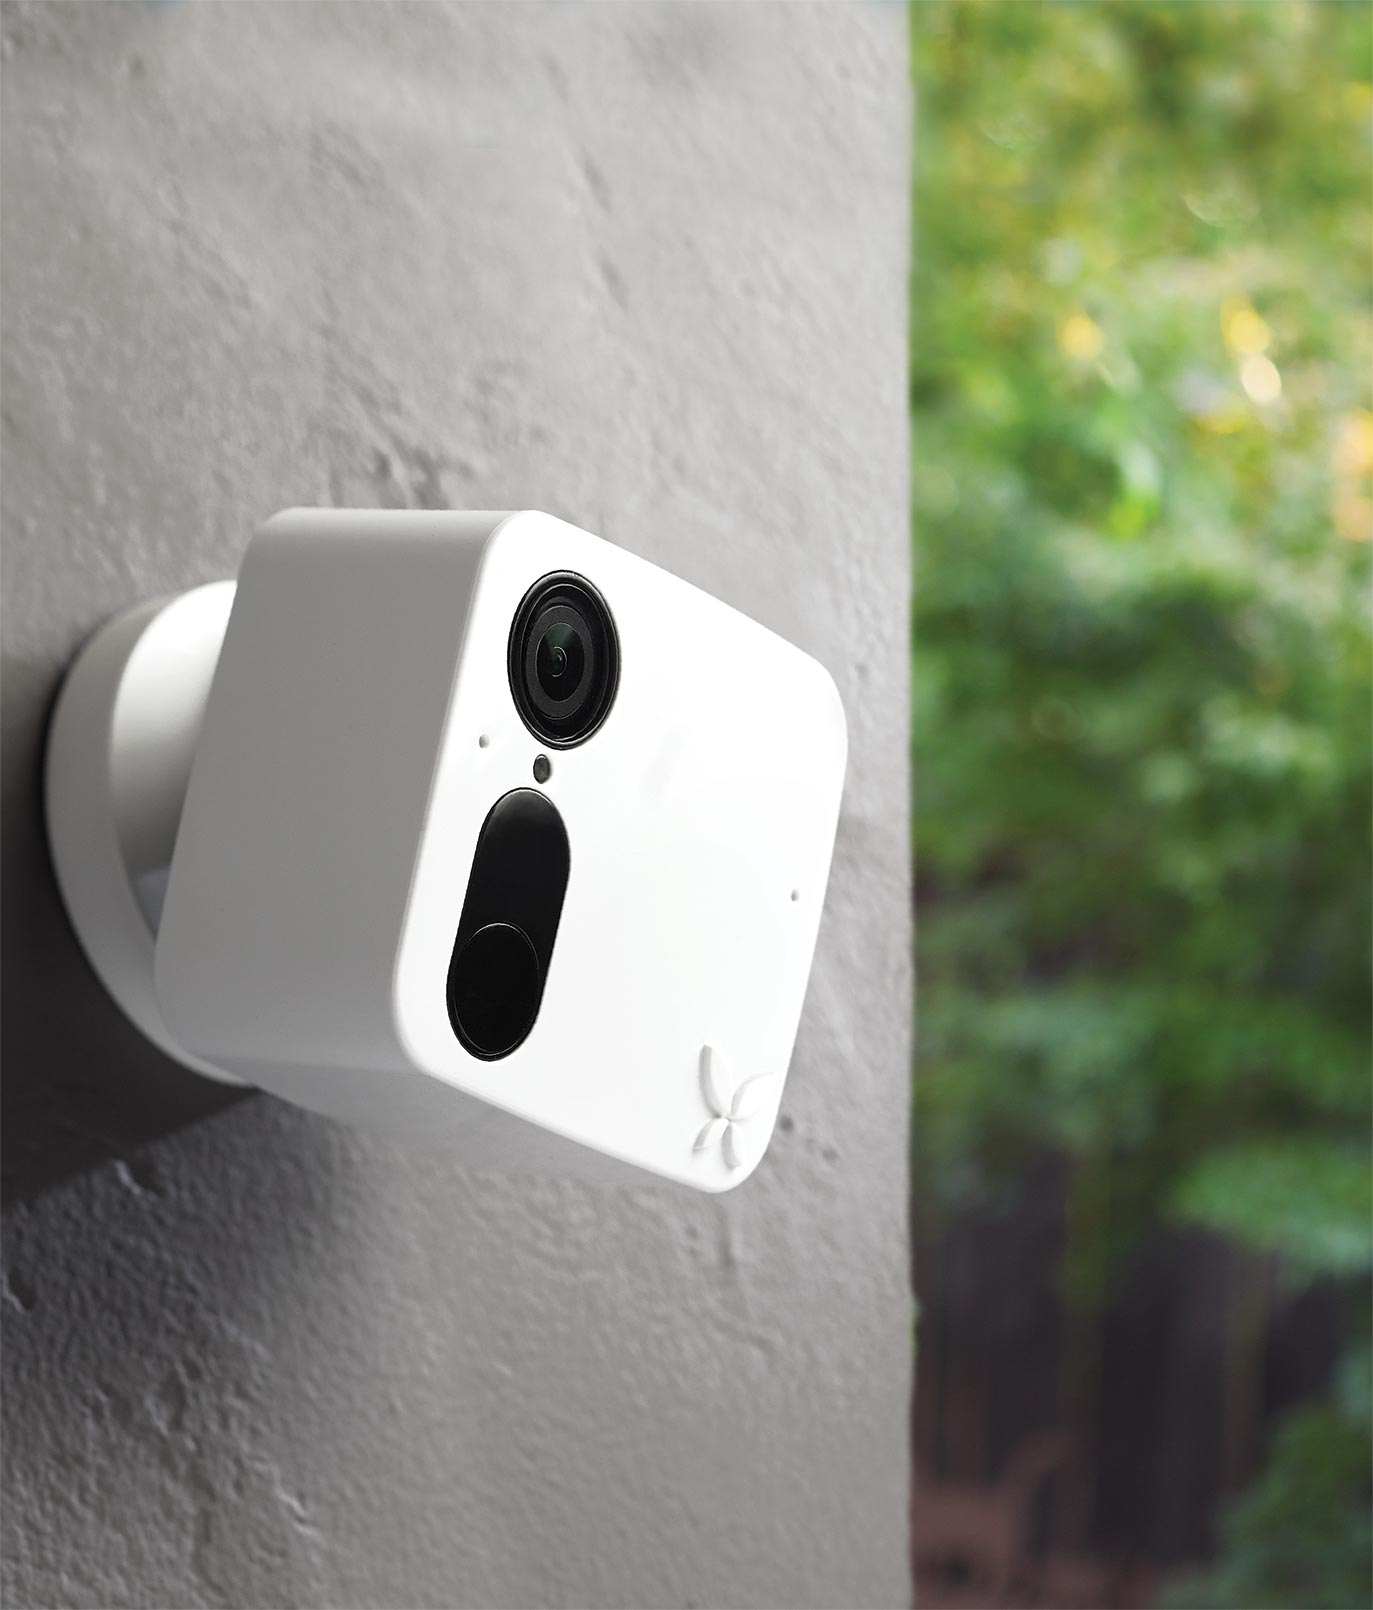 Security camera with no wires, seen outside.